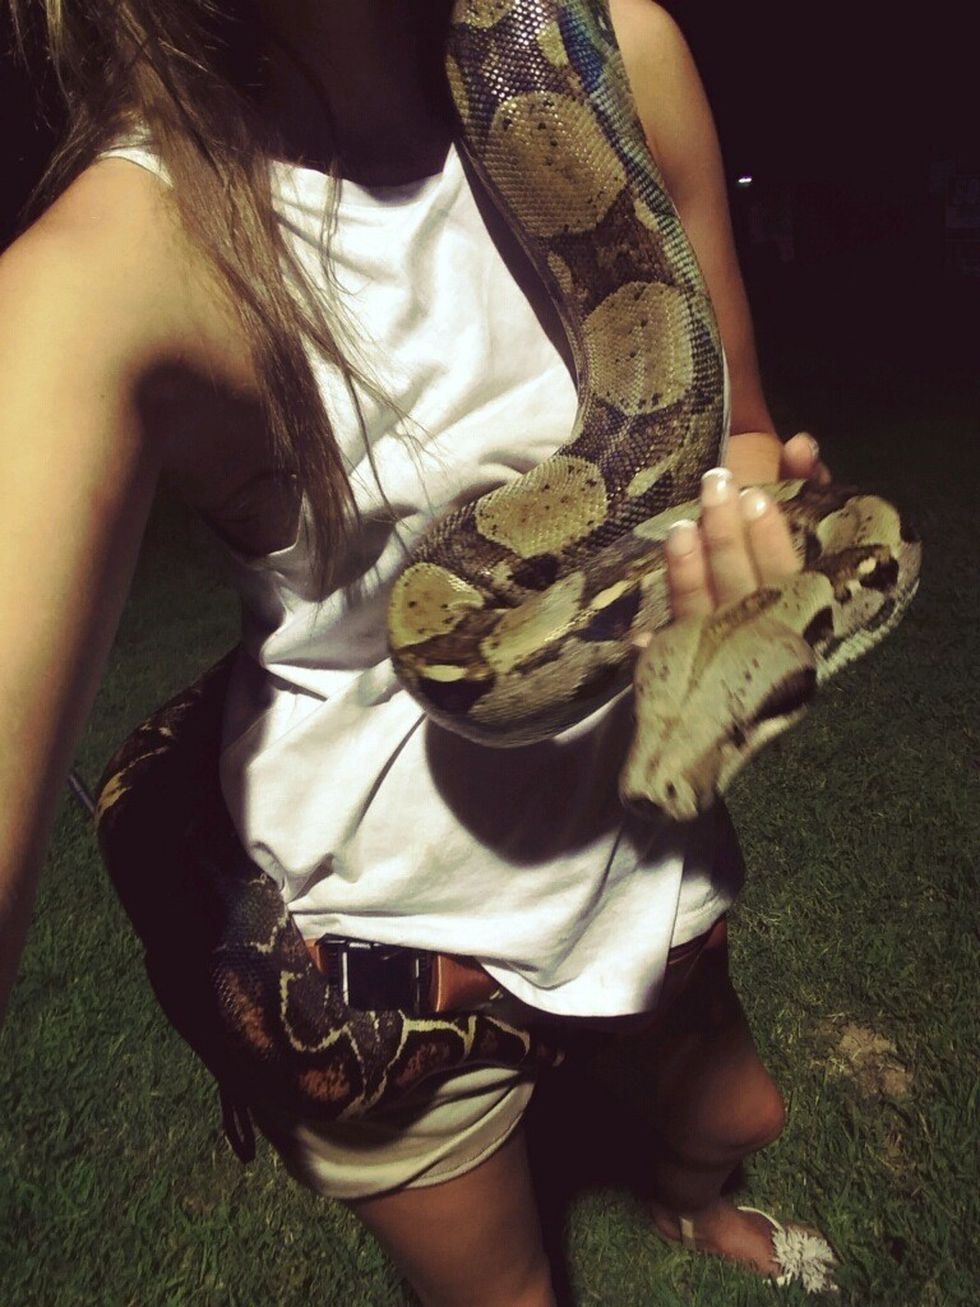 Eve the boa constrictor (source: Shelby Givens)